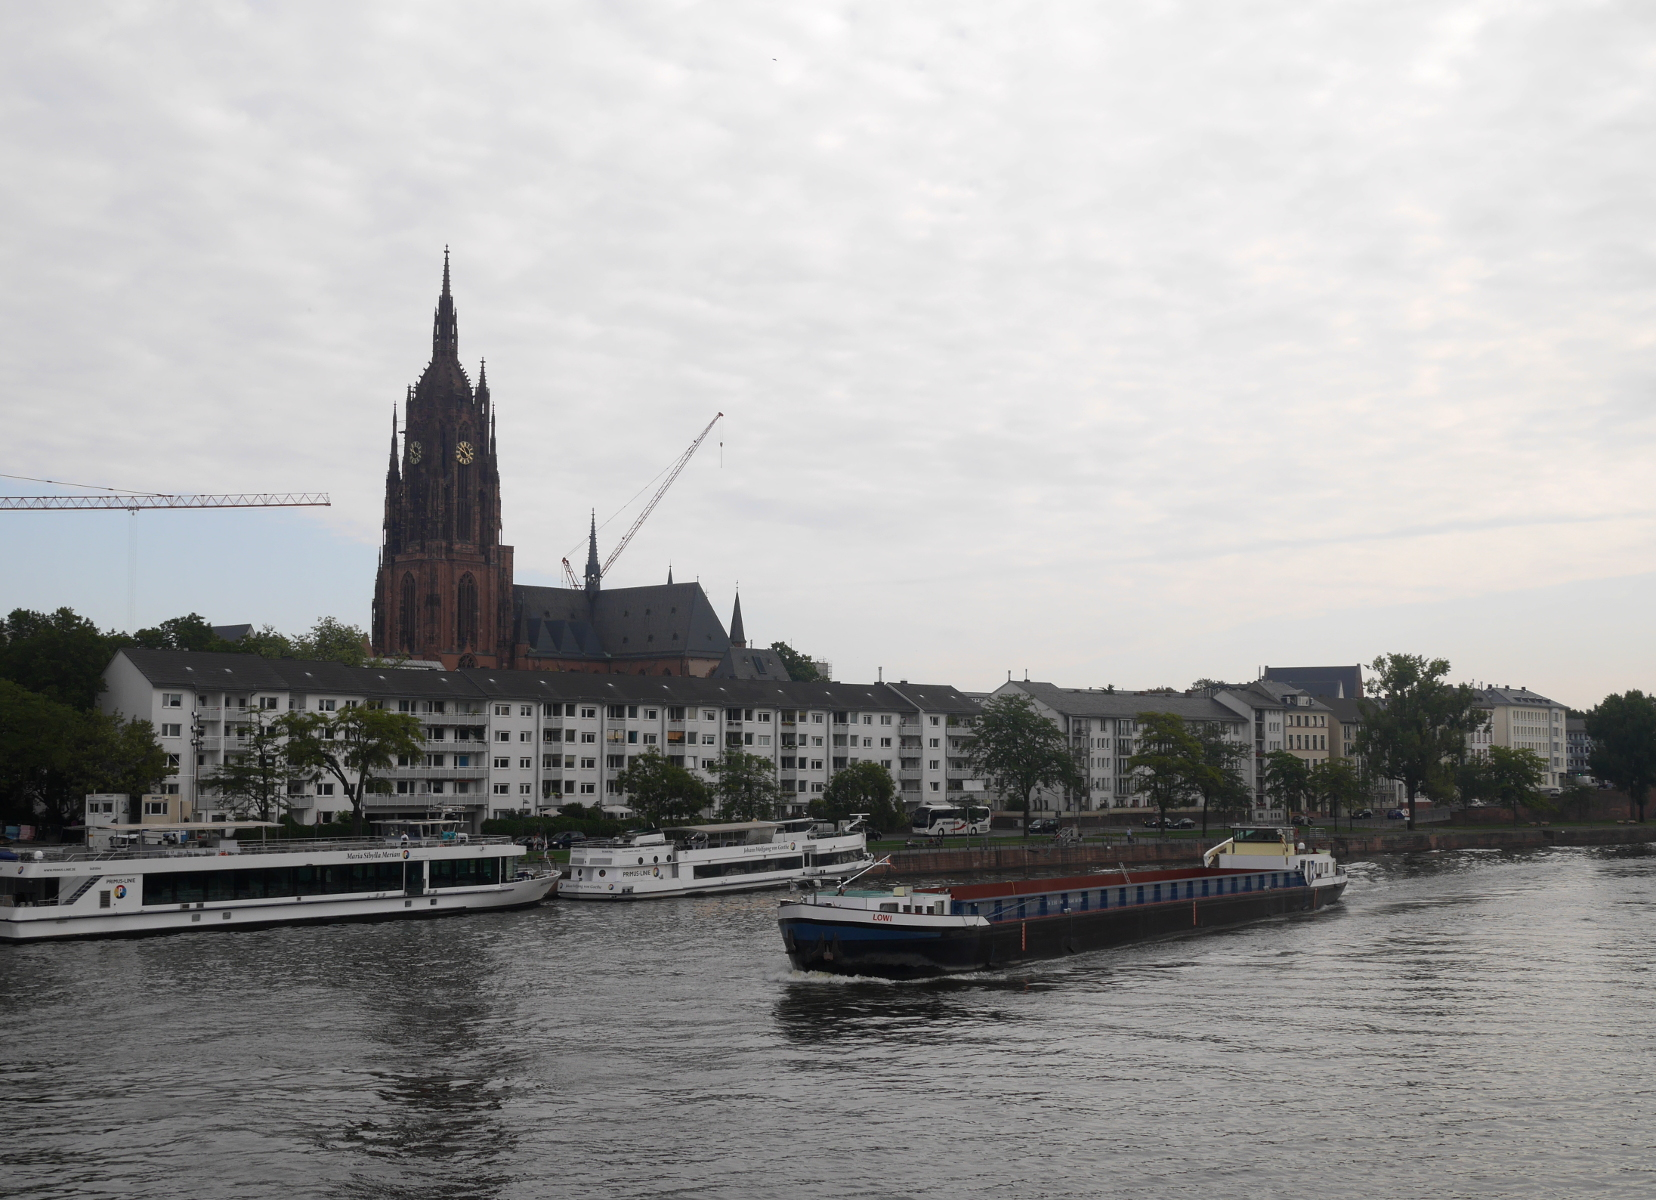 View of the Frankfurter Dom from a bridge over the Main River.